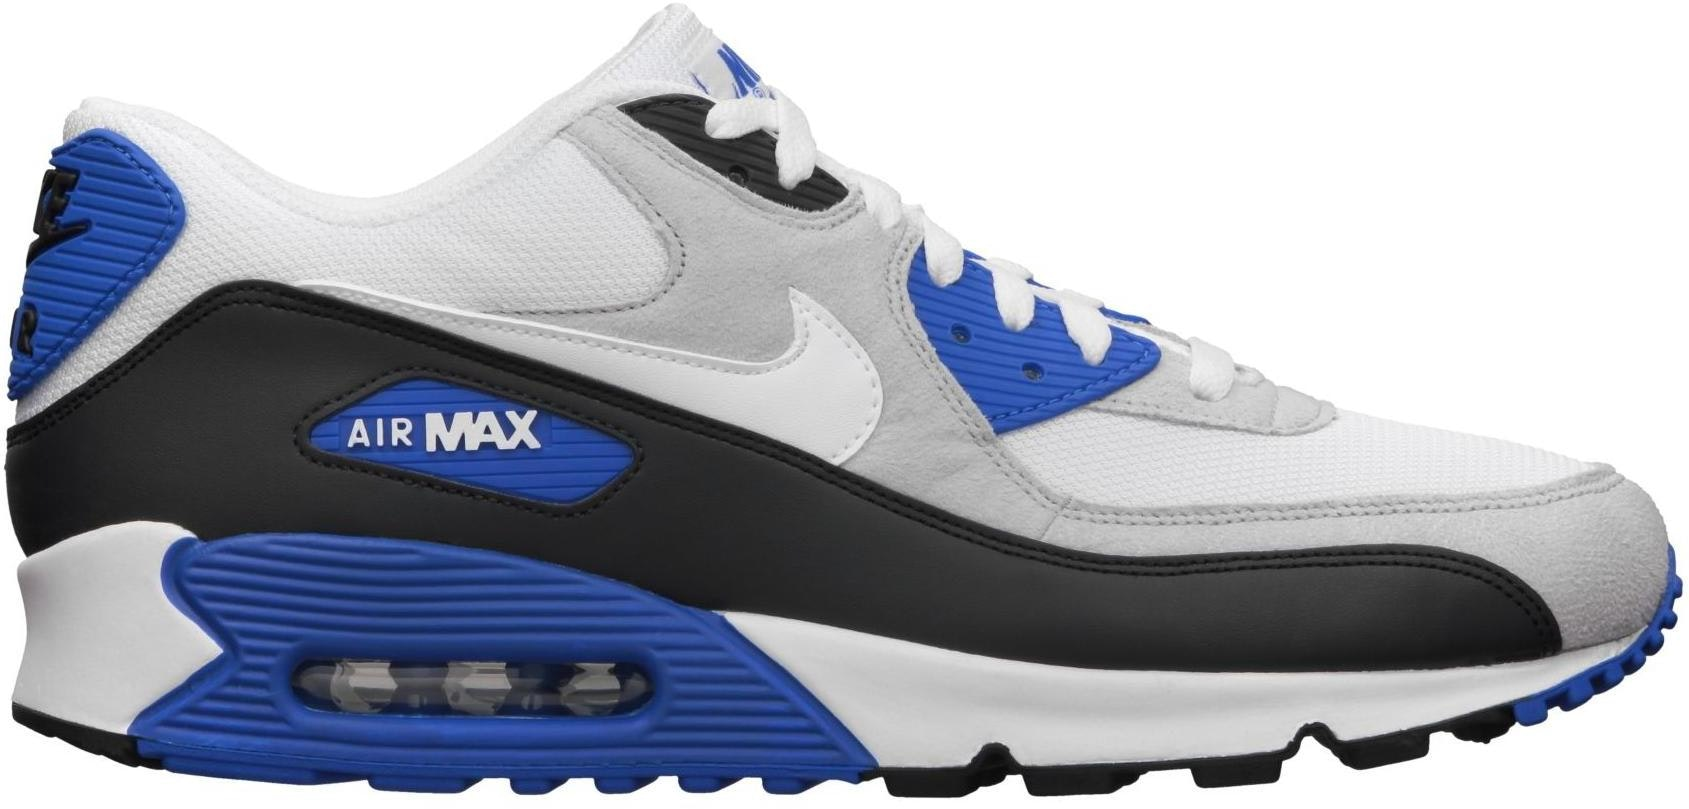 Air Max 90 Anthracite Obsidian